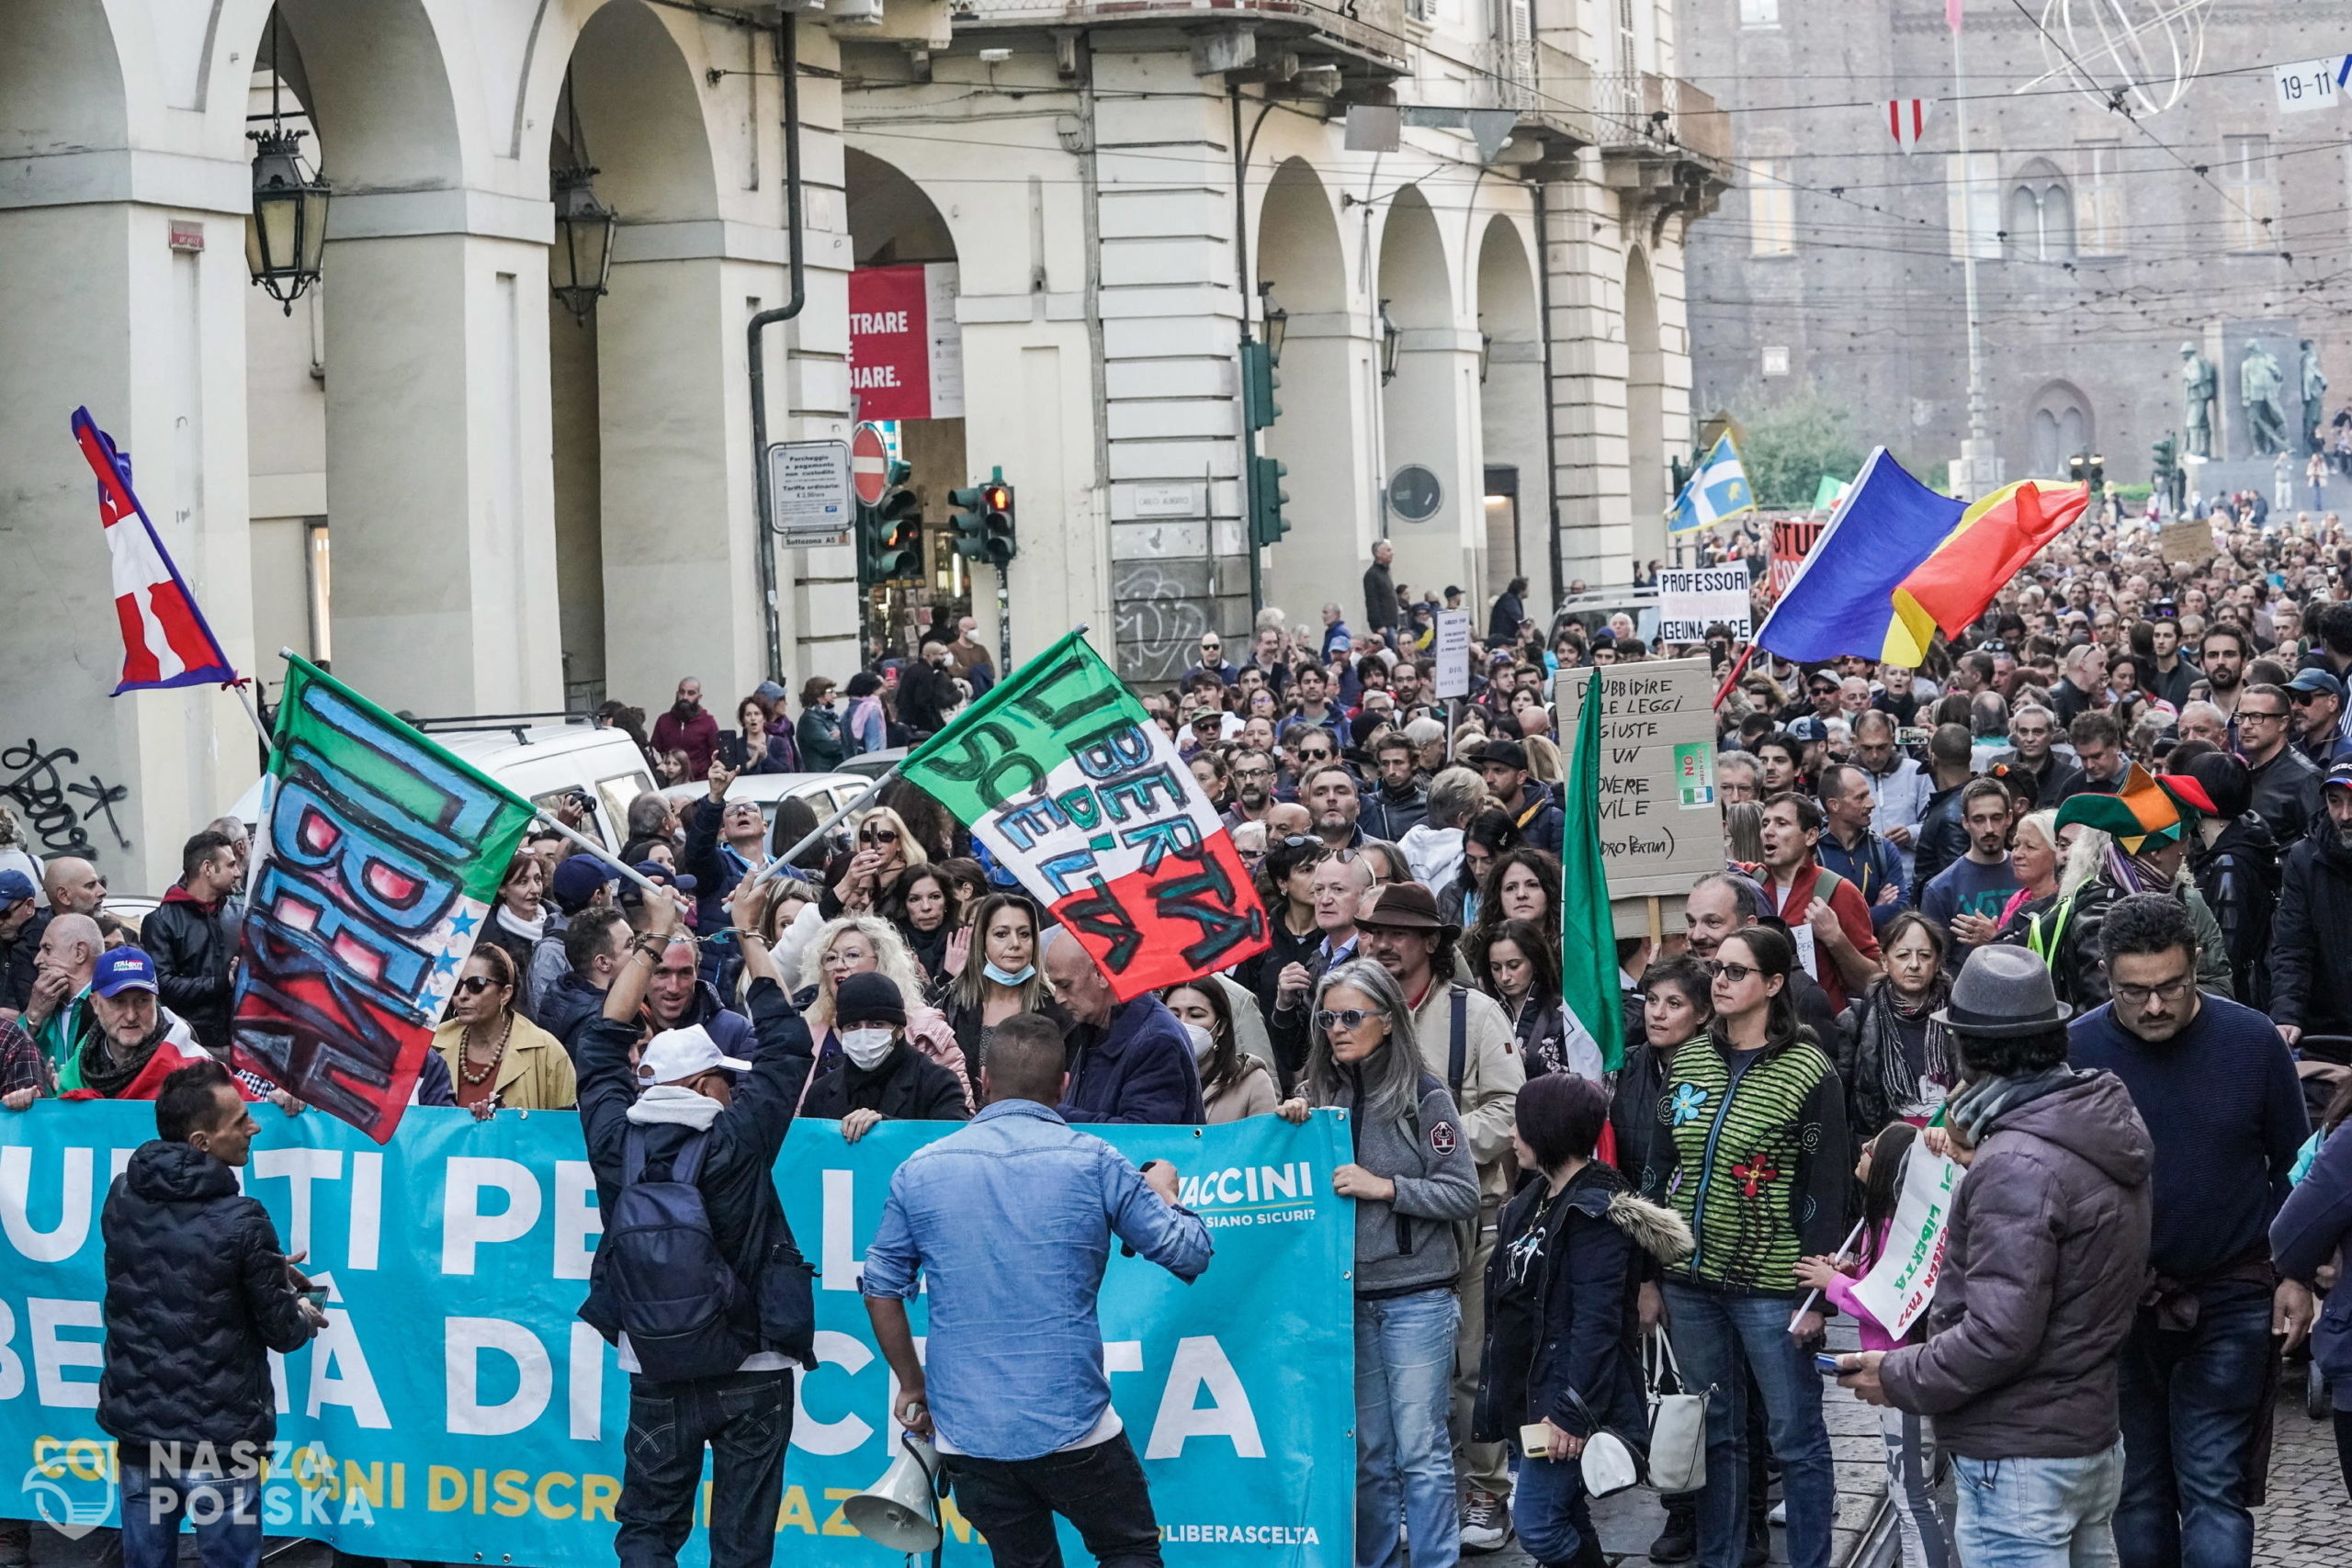 epa09527468 People take part in the No Green Pass rally in Turin, Italy, 16 October 2021. Starting from 15 October, Italian workers from the public and private sectors are required to hold the 'Green Pass' vaccine passport.  EPA/Tino Romano  Dostawca: PAP/EPA.